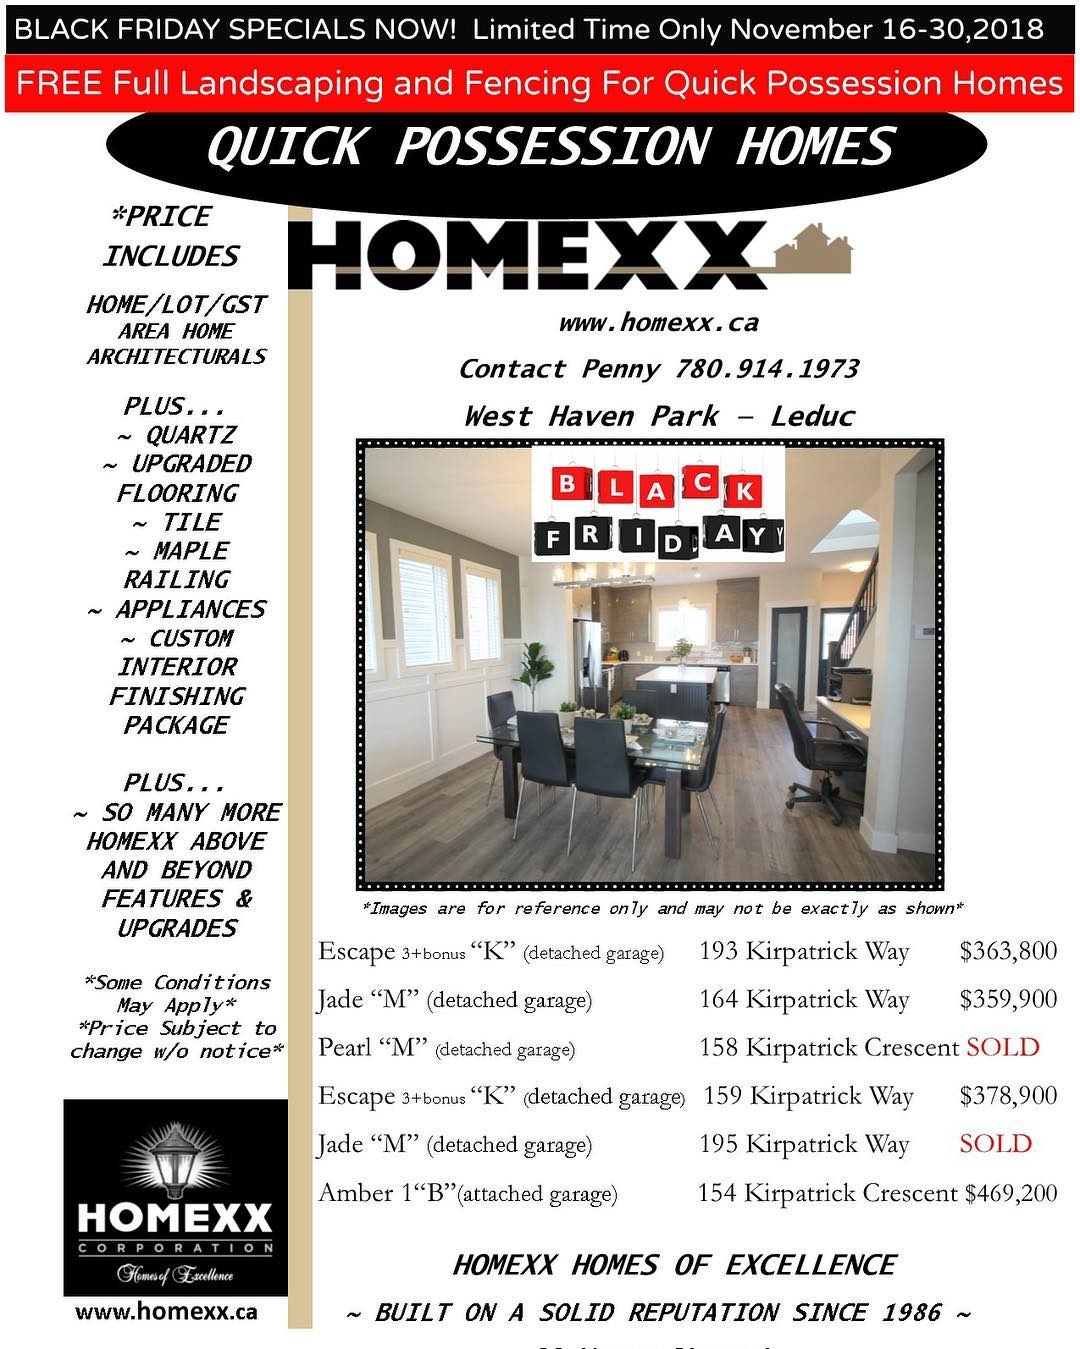 Black Friday Specials Black Friday Special Homexx